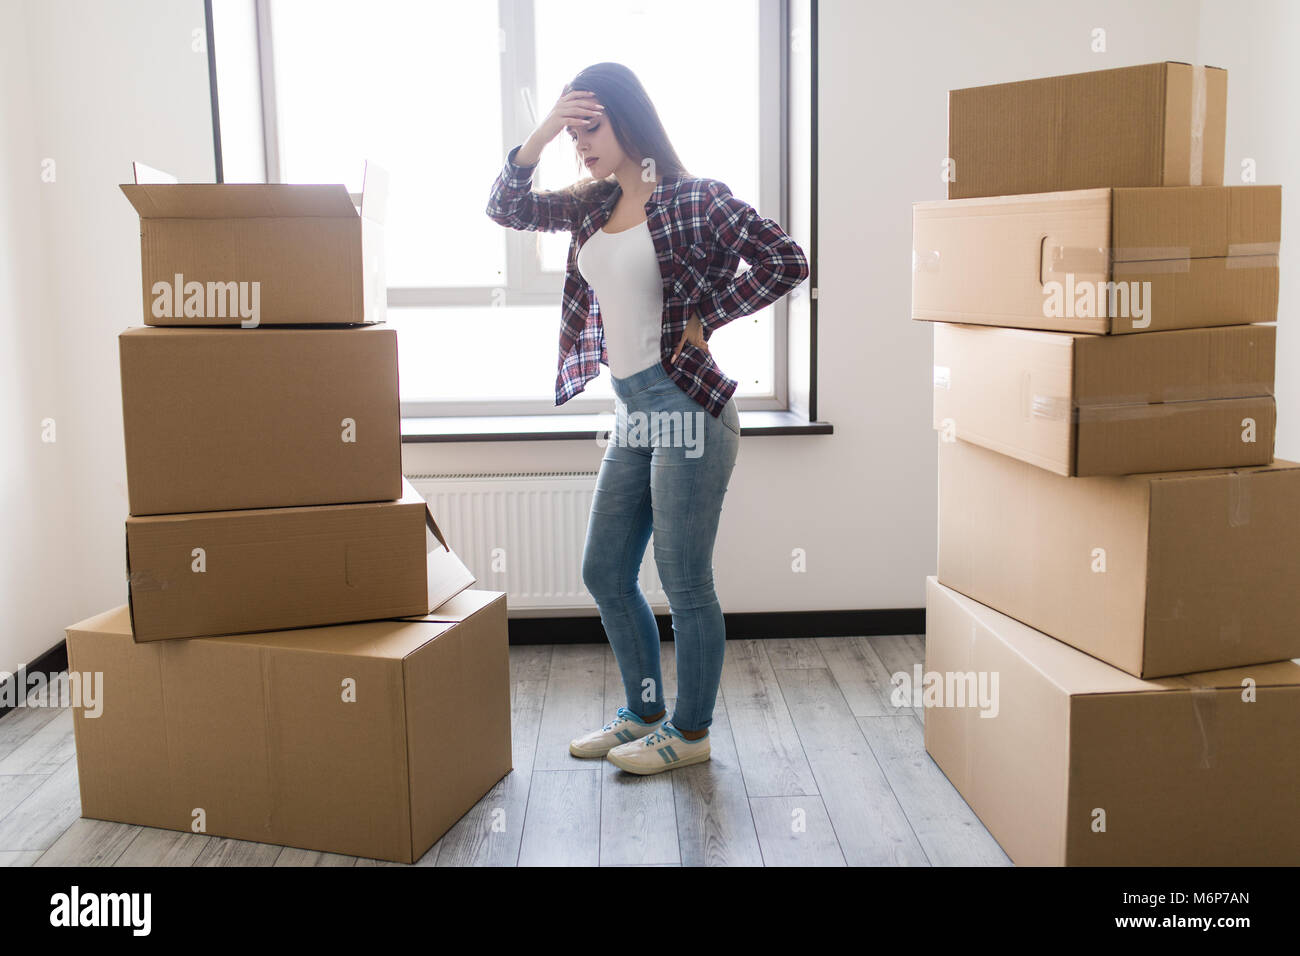 Young woman suffering from pain after moving heavy box - Stock Image